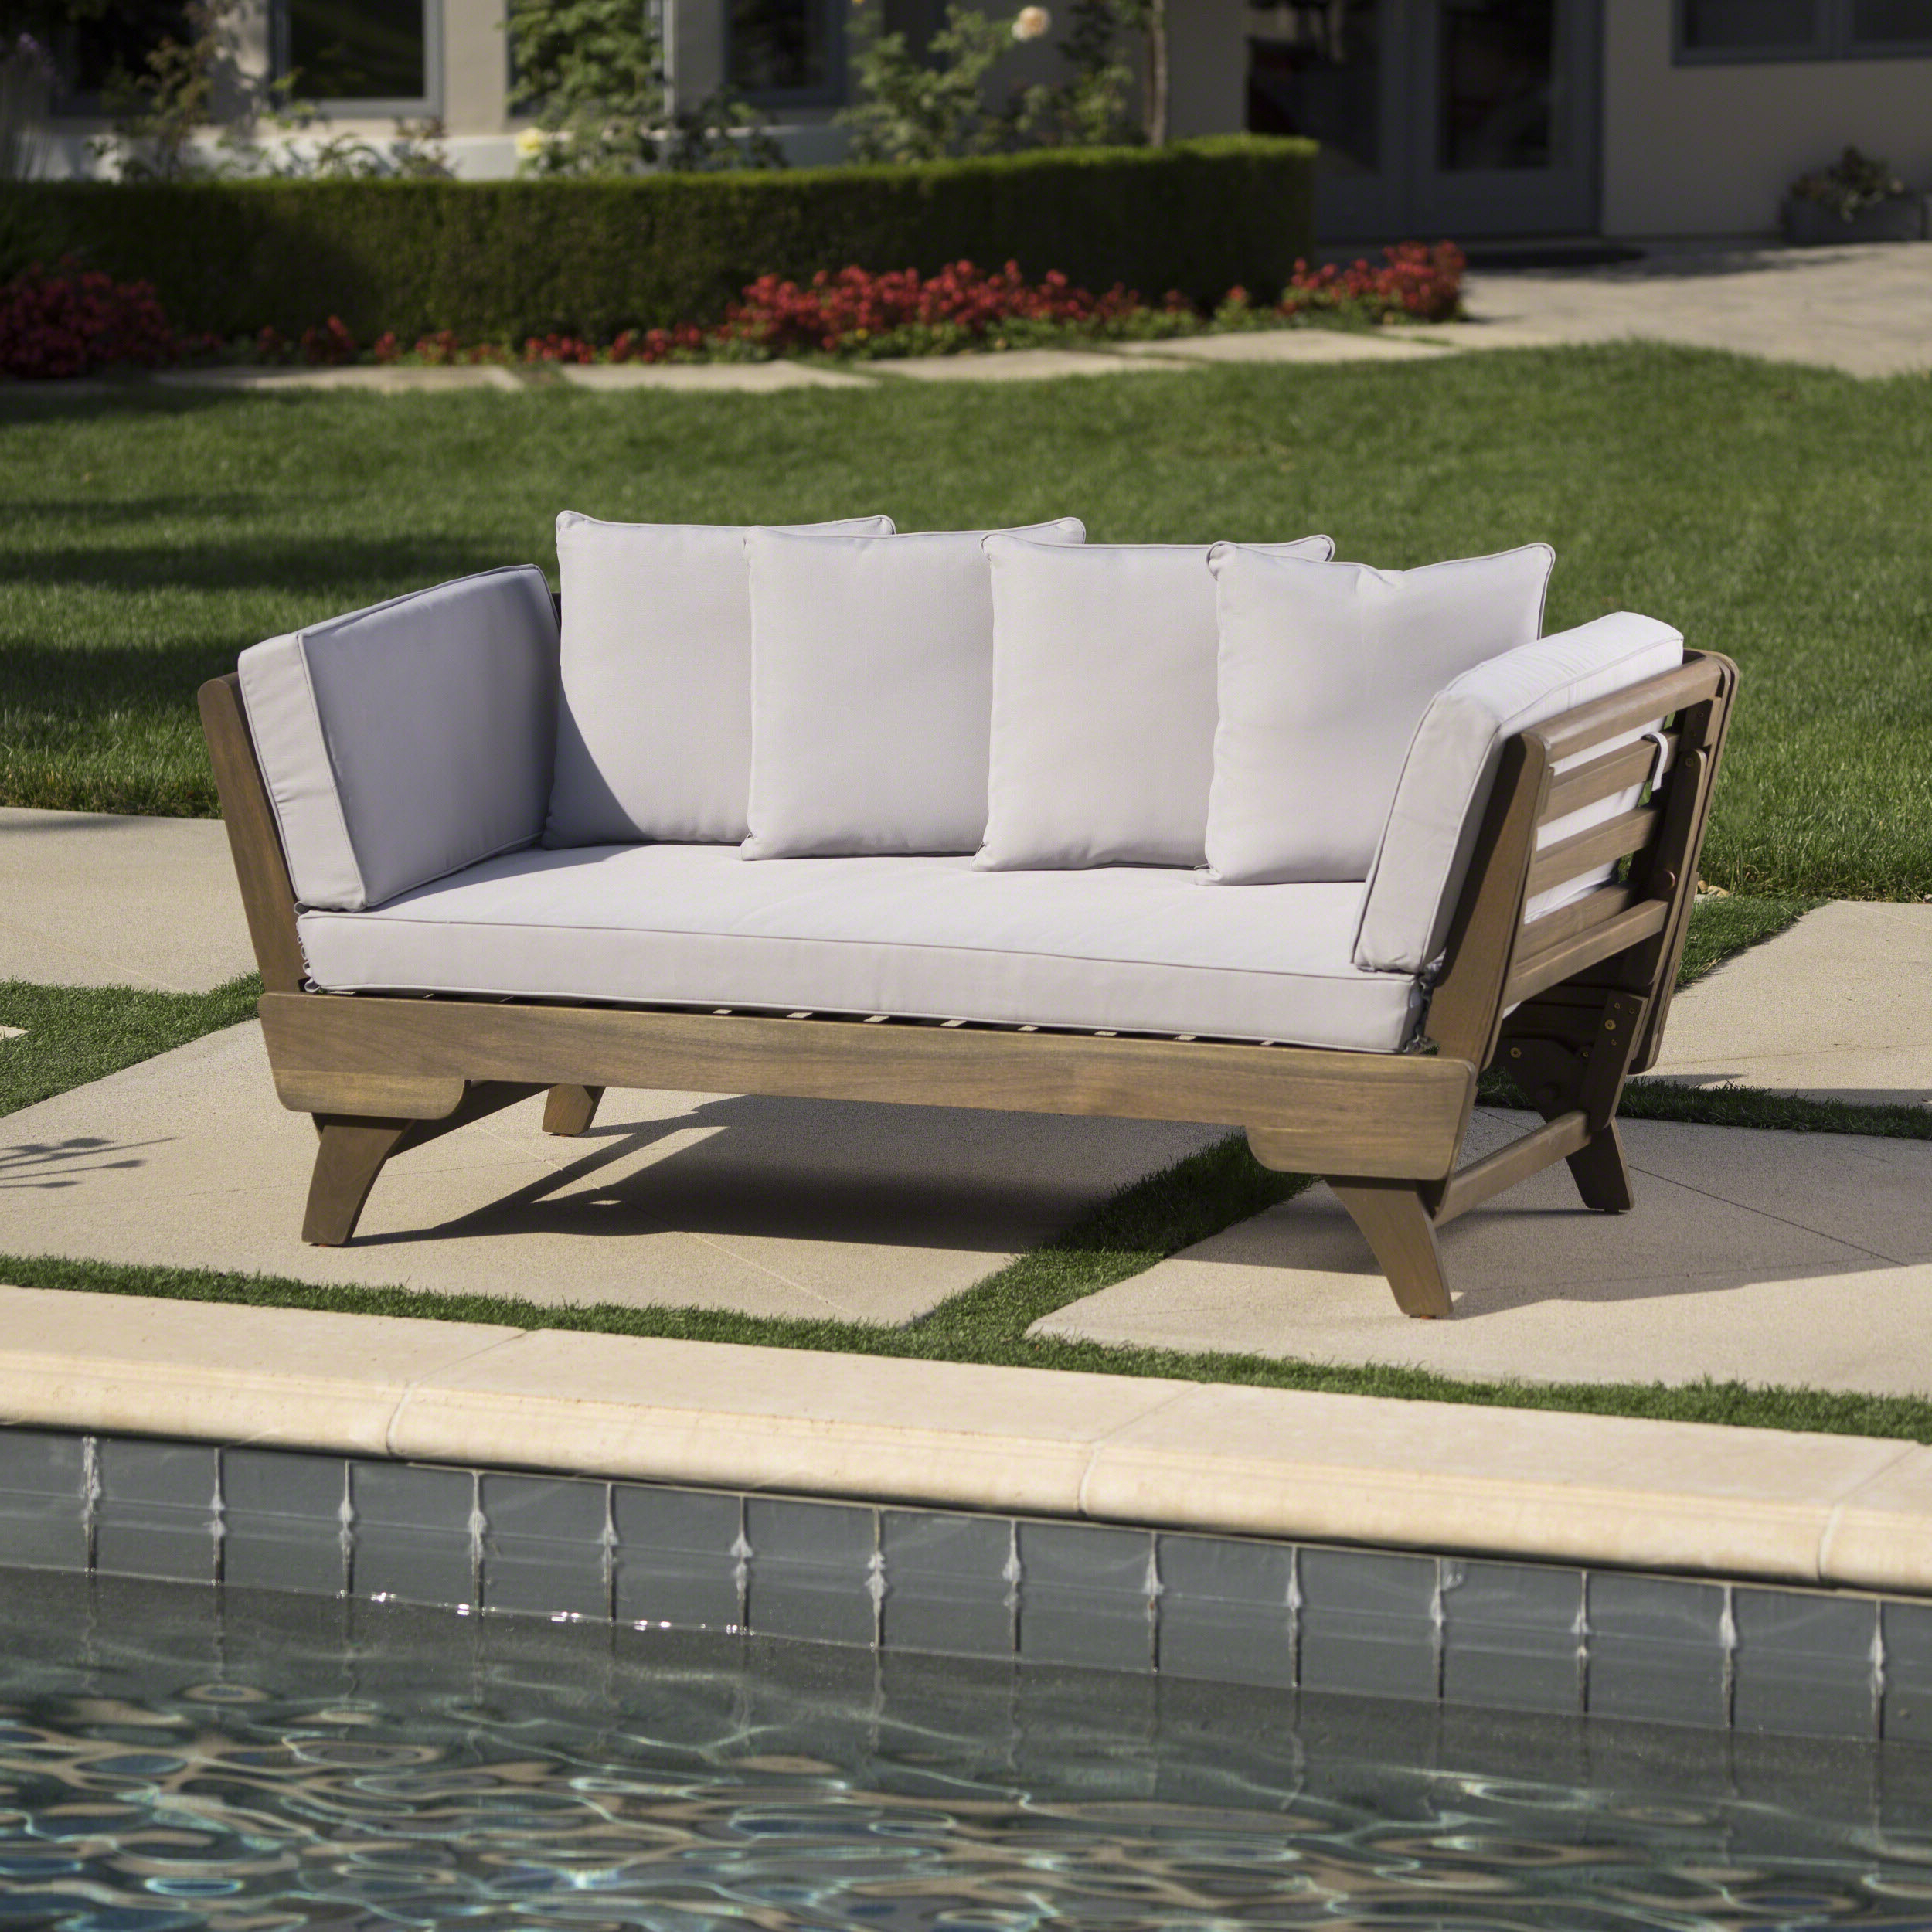 Bodine Patio Daybeds With Cushions For Most Recently Released Ellanti Patio Daybed With Cushions (View 7 of 25)